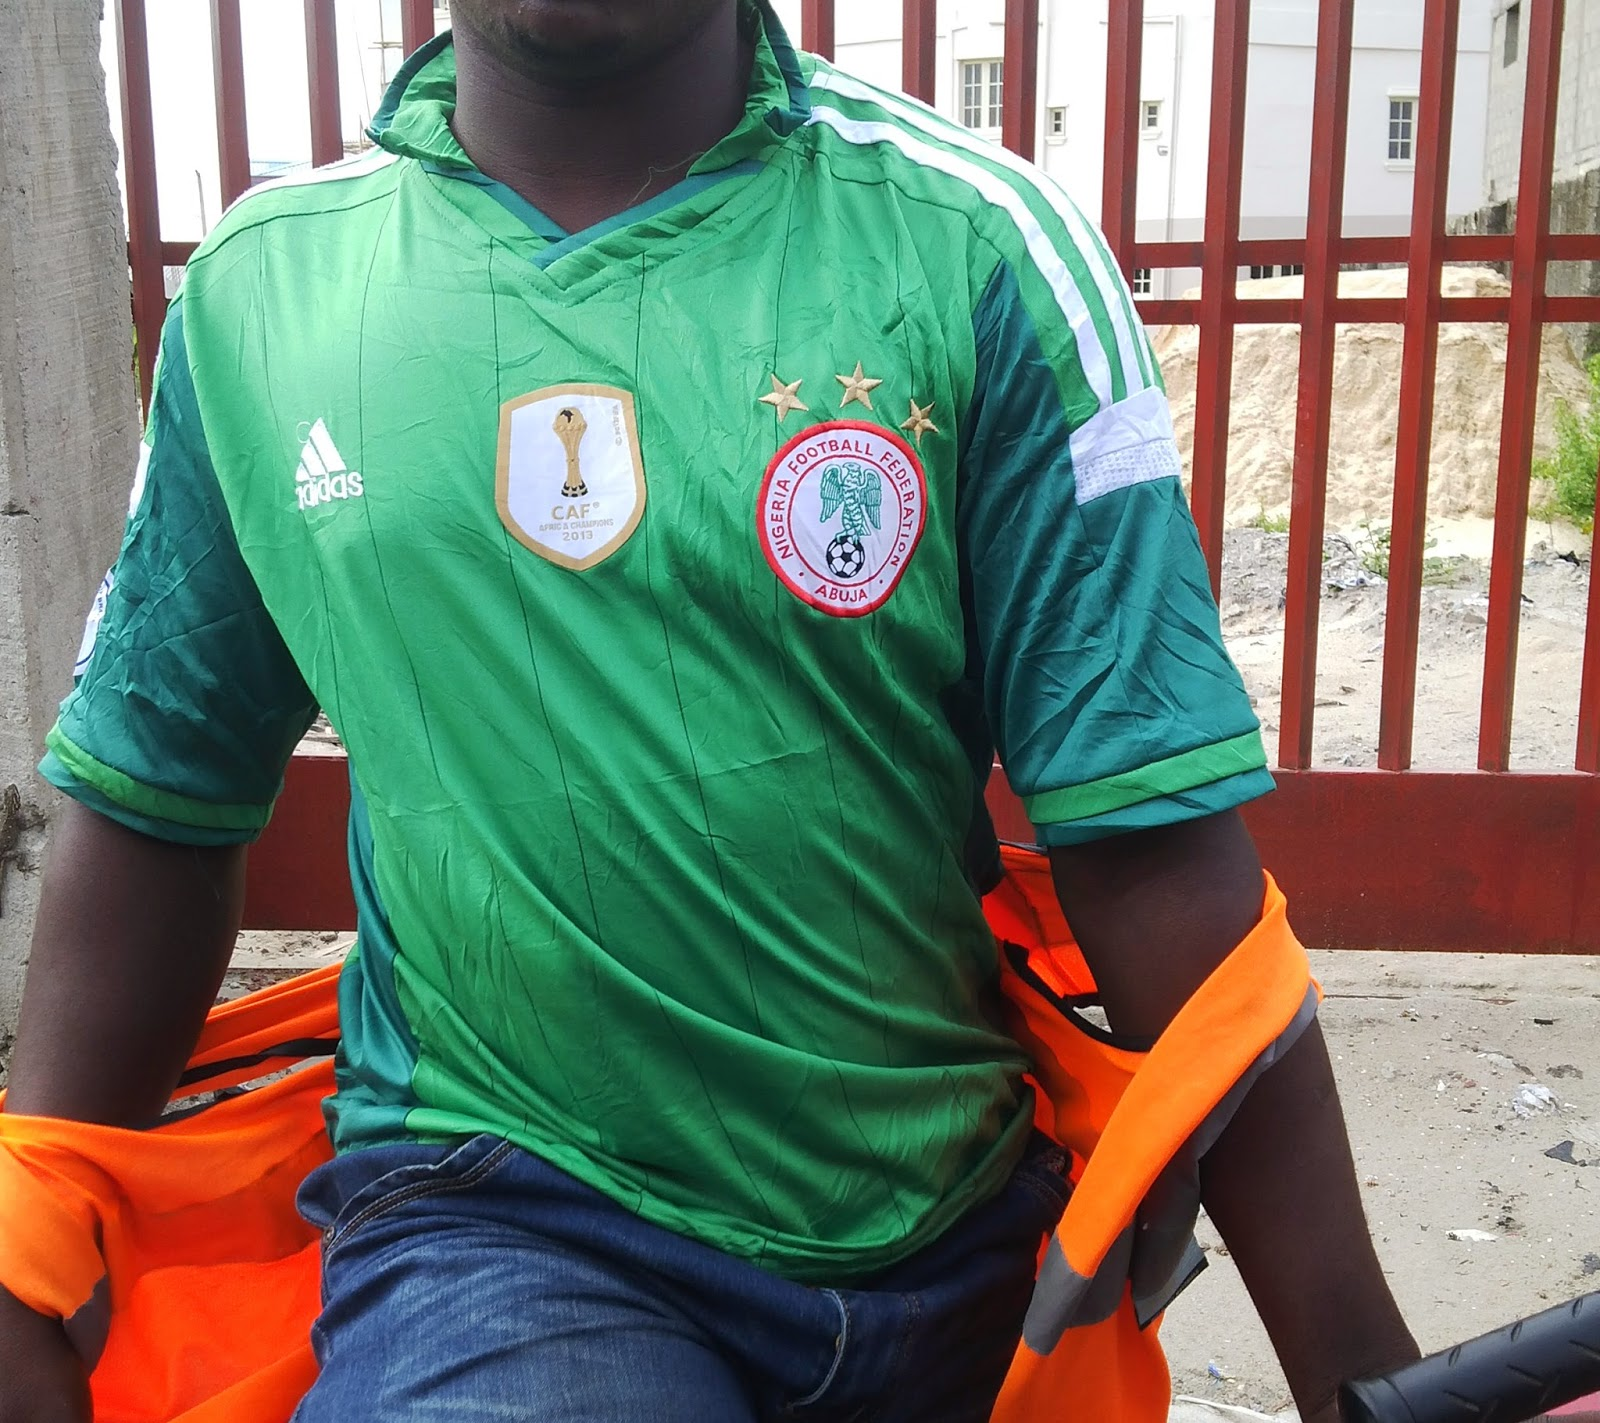 online store 25f12 04830 Colin Udoh - Beyond The Ball Game: Fake Nigeria jerseys go ...